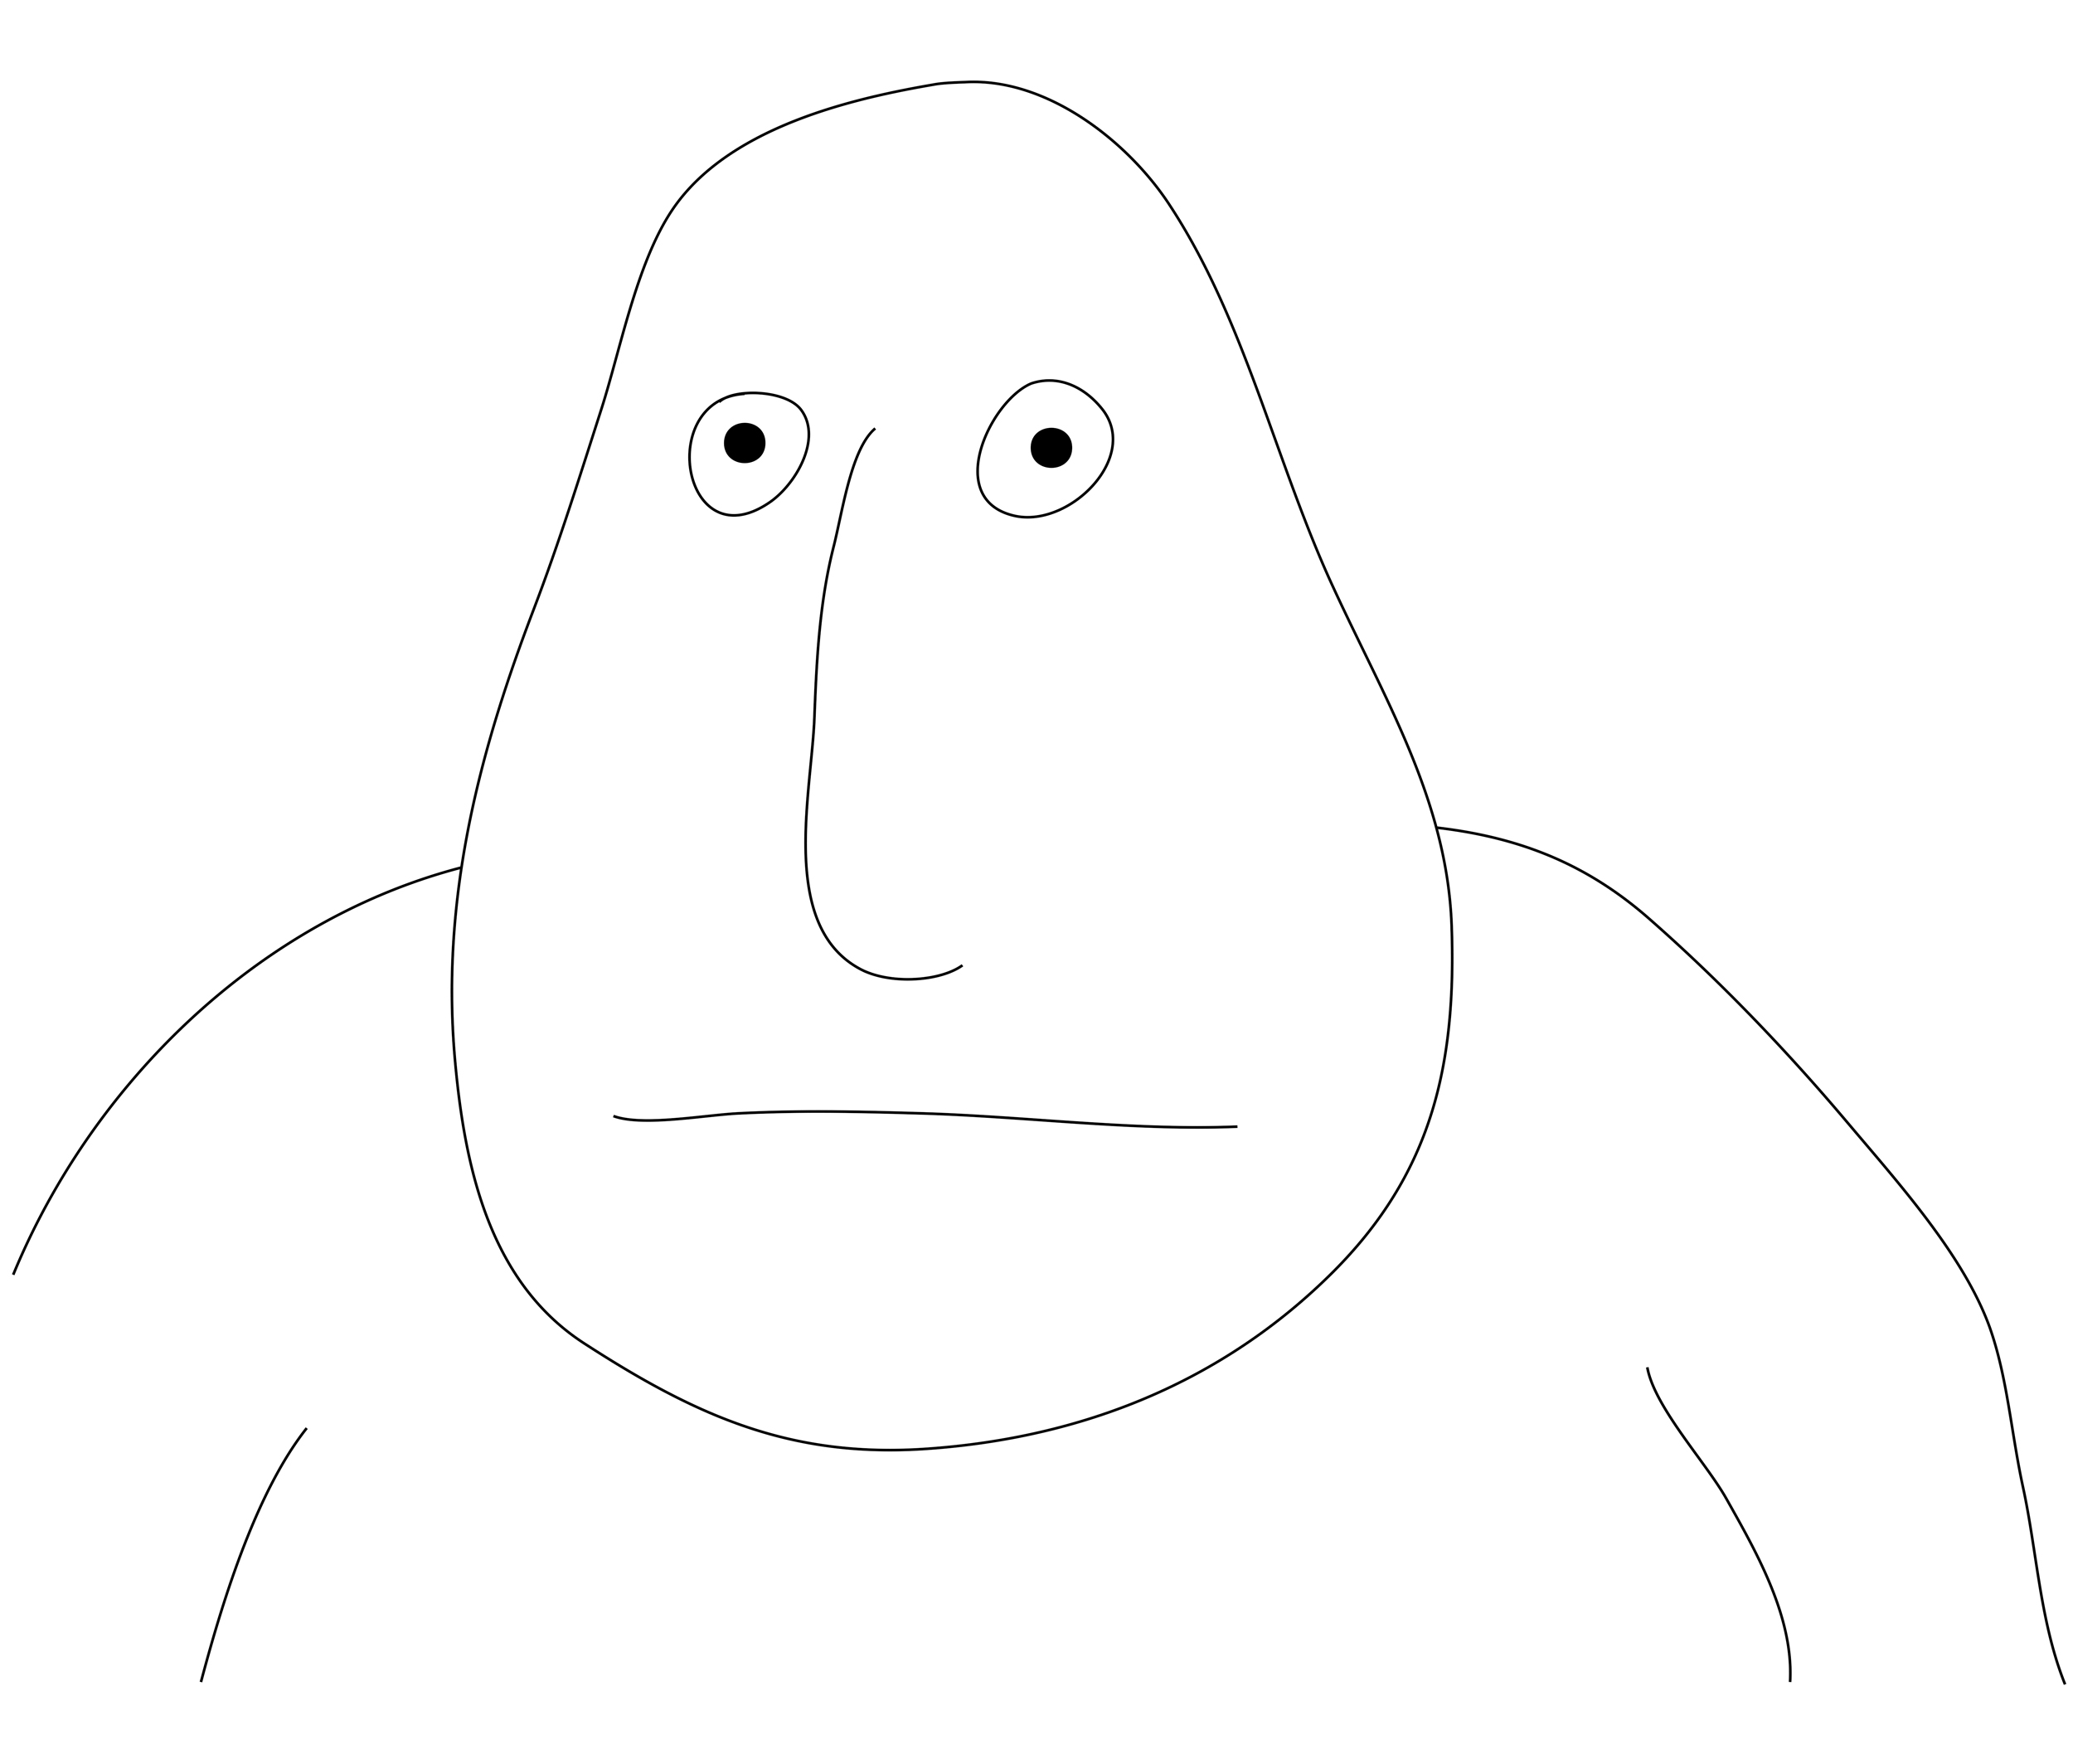 Mr. Pear Illustrator Smoothed copy.jpg